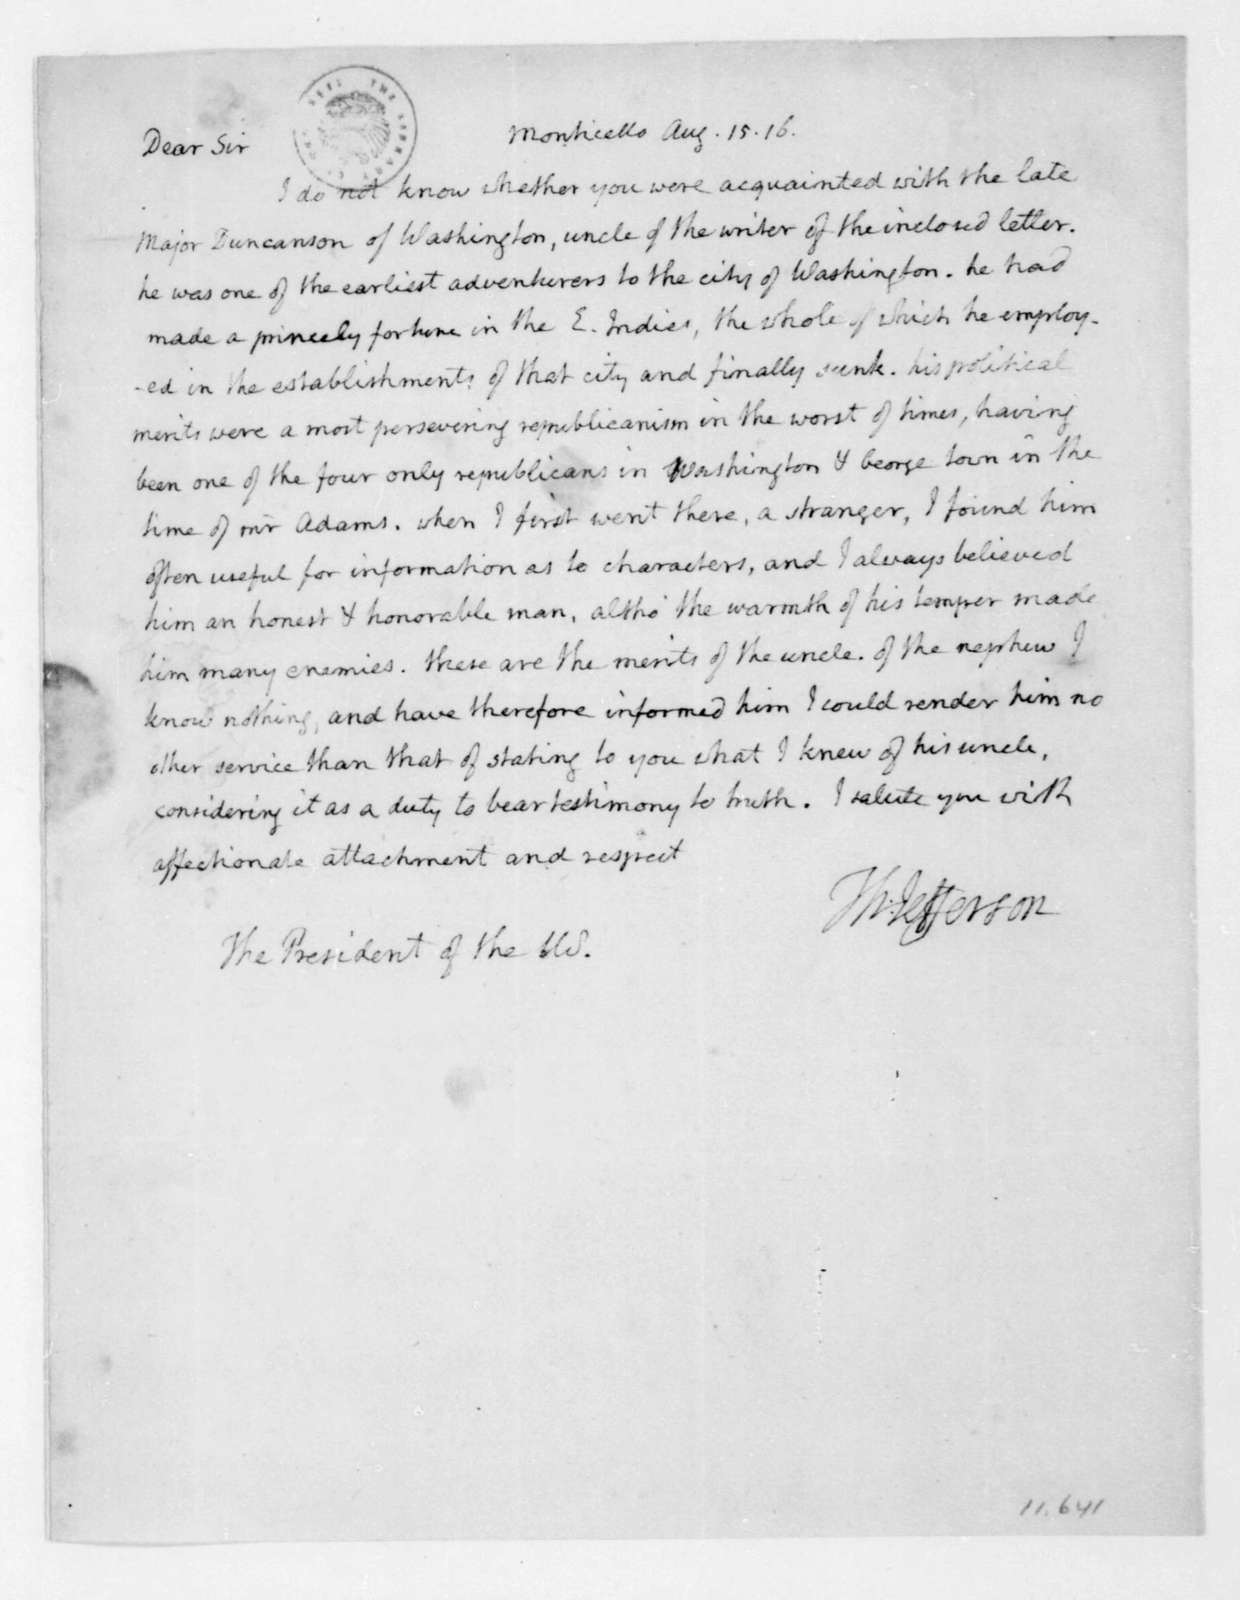 Thomas Jefferson to James Madison, August 15, 1816.